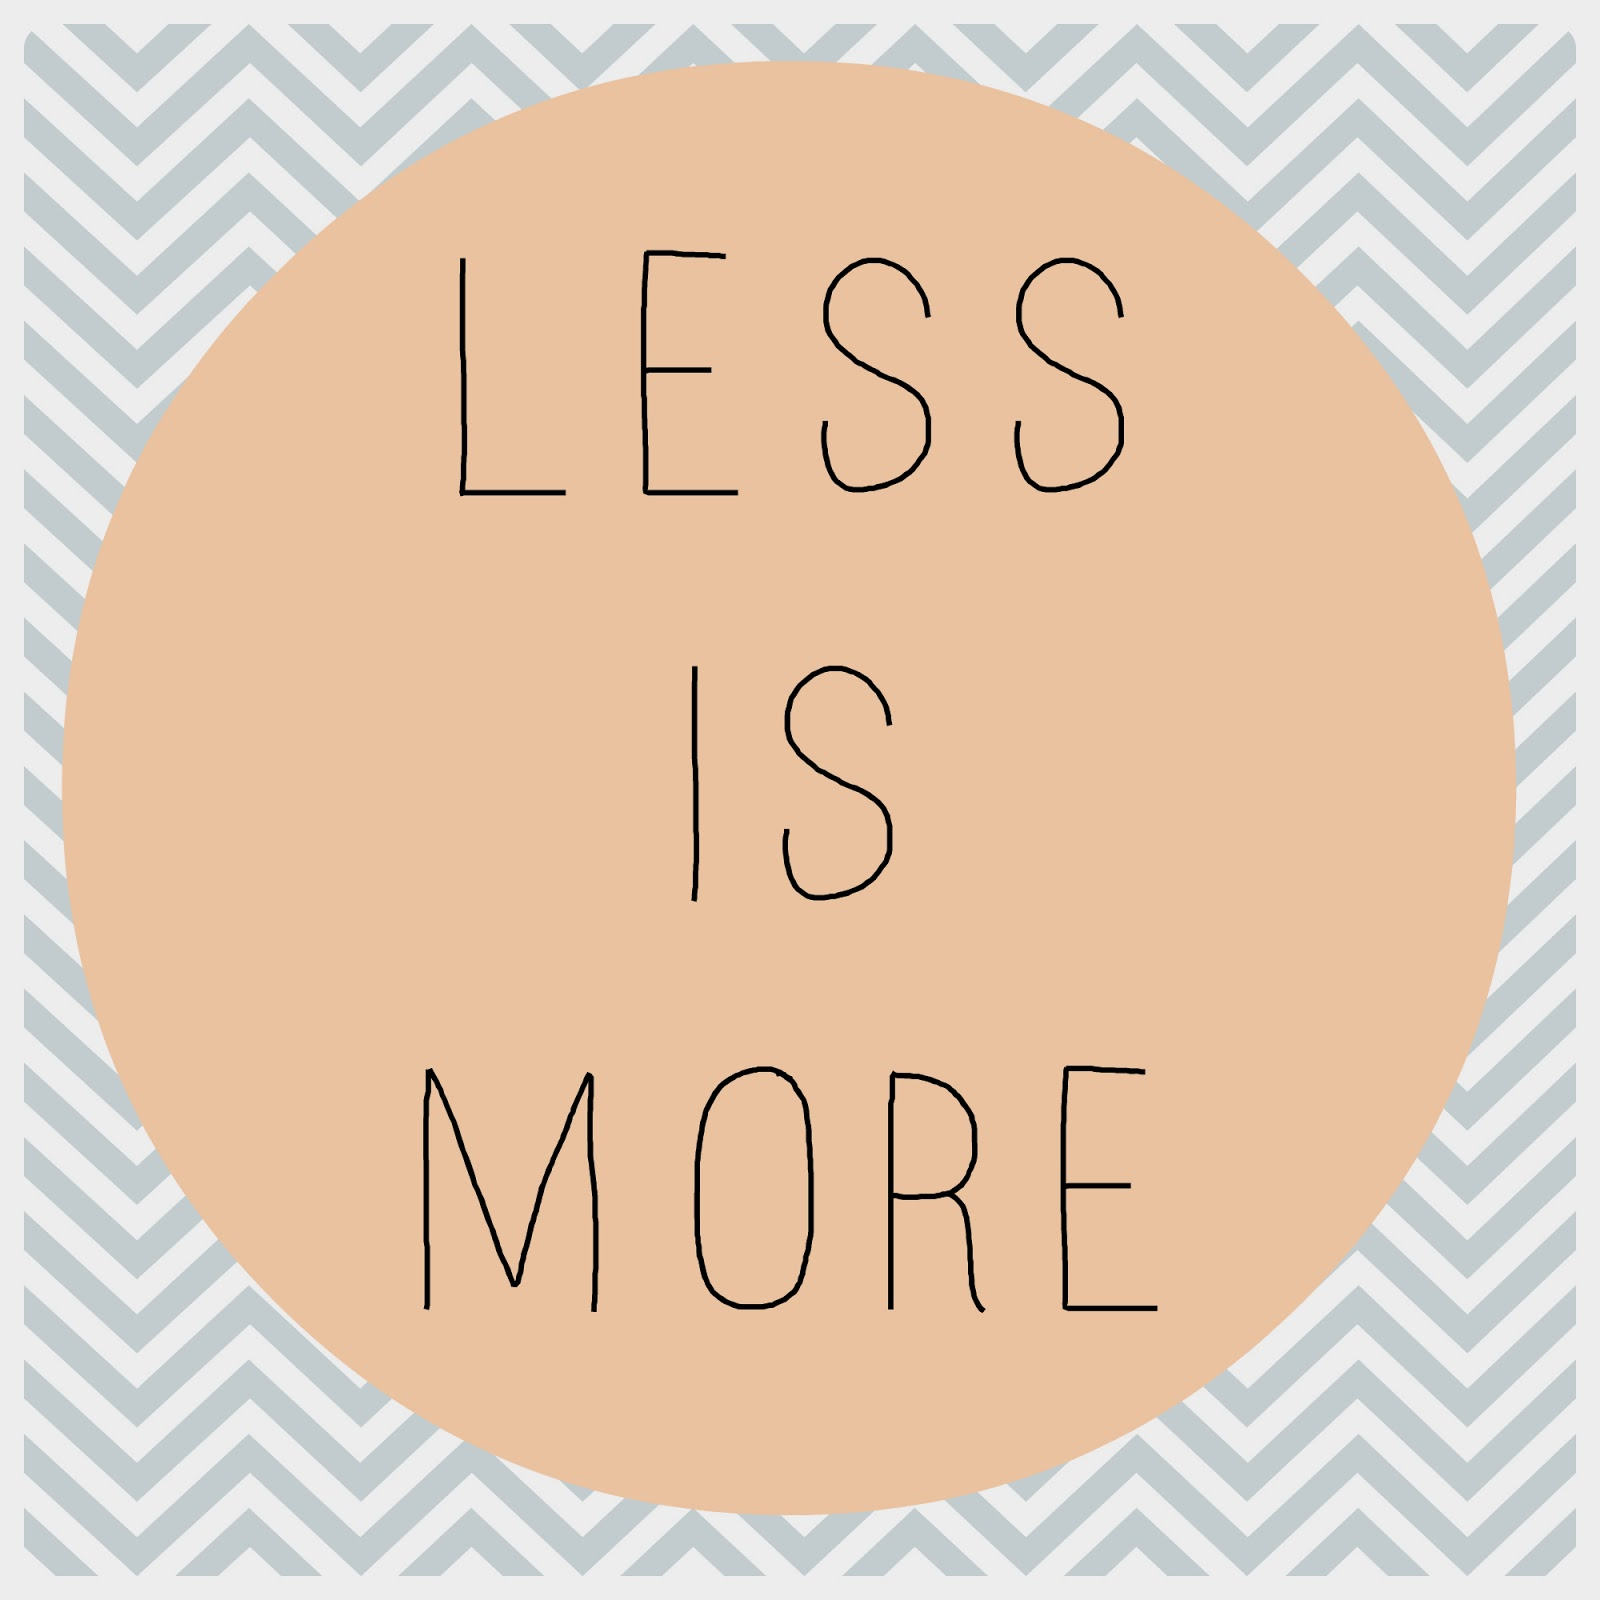 less is more, take less photos, too many digital photos, less = more